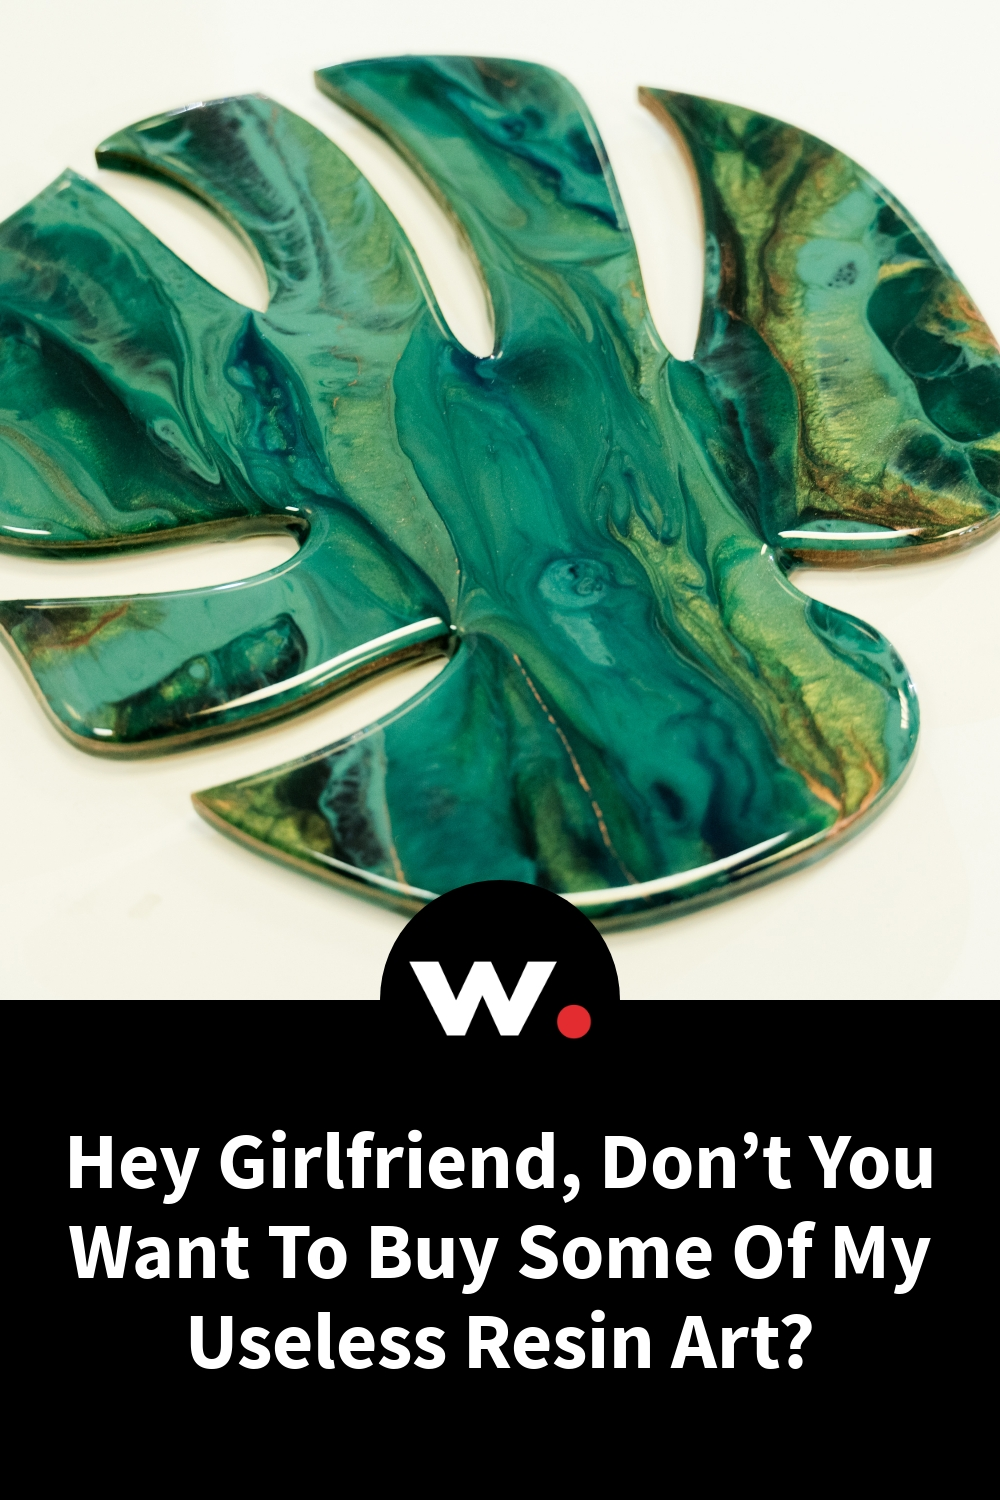 Hey Girlfriend, Don't You Want To Buy Some Of My Useless Resin Art?